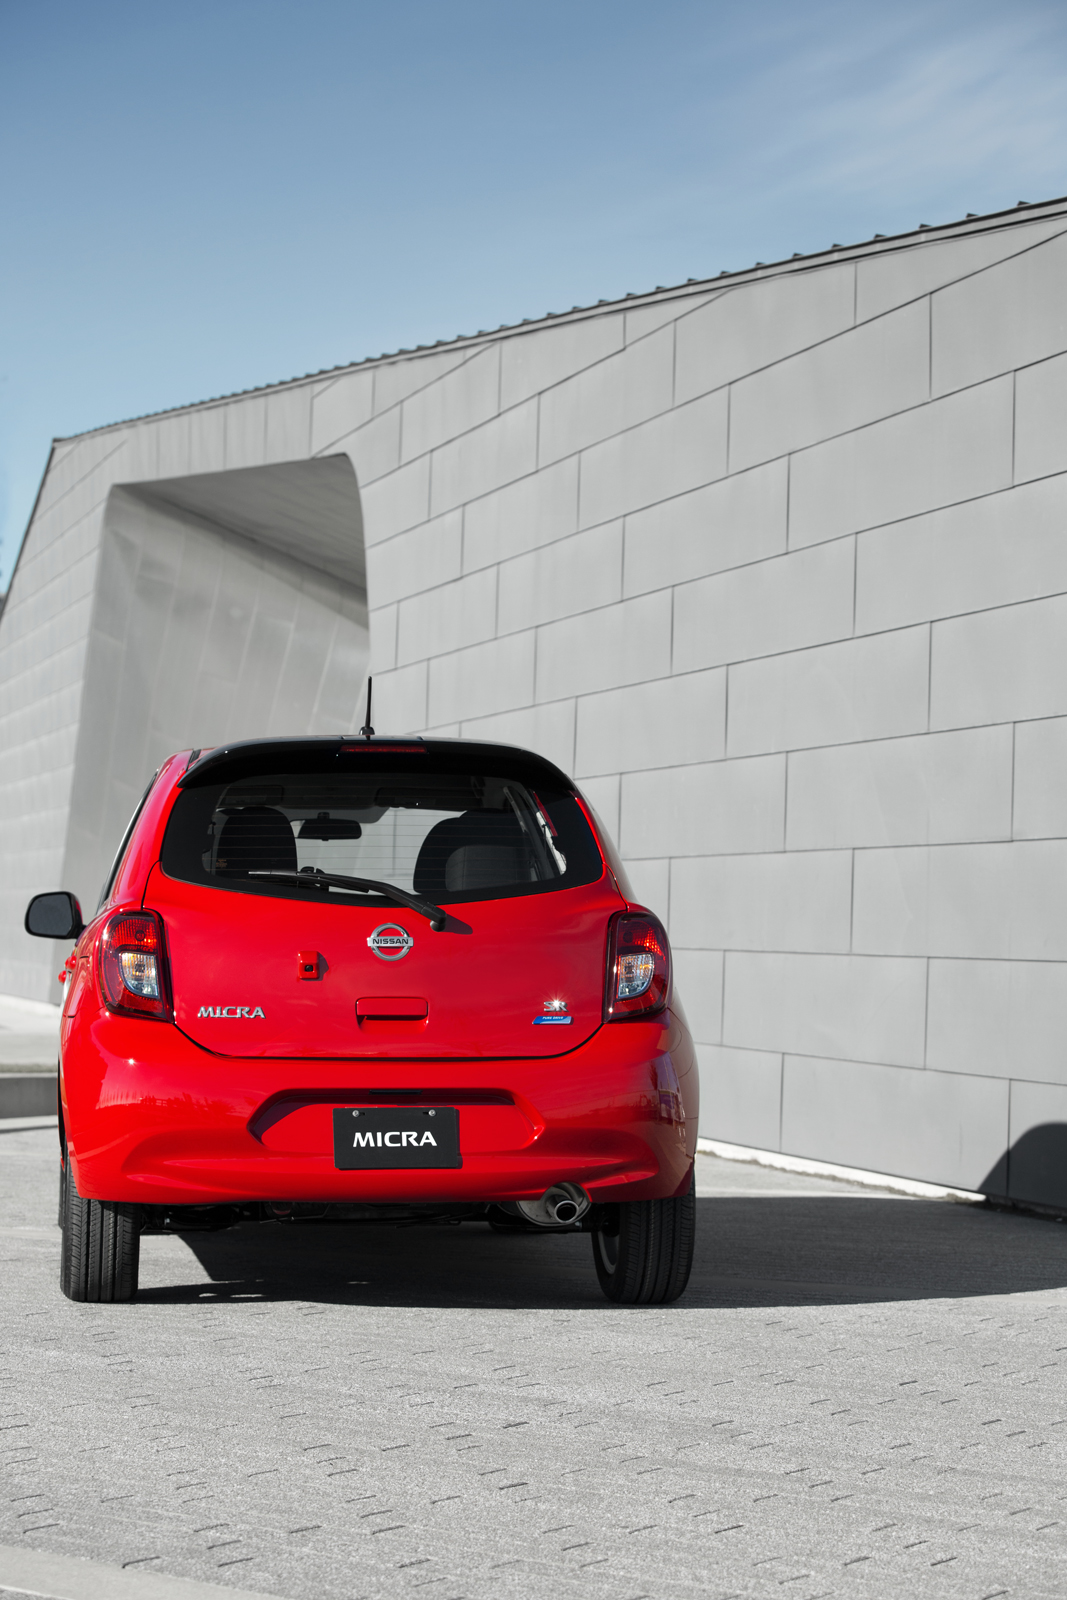 canadian market nissan micra revealed with 1 6-liter engine  video